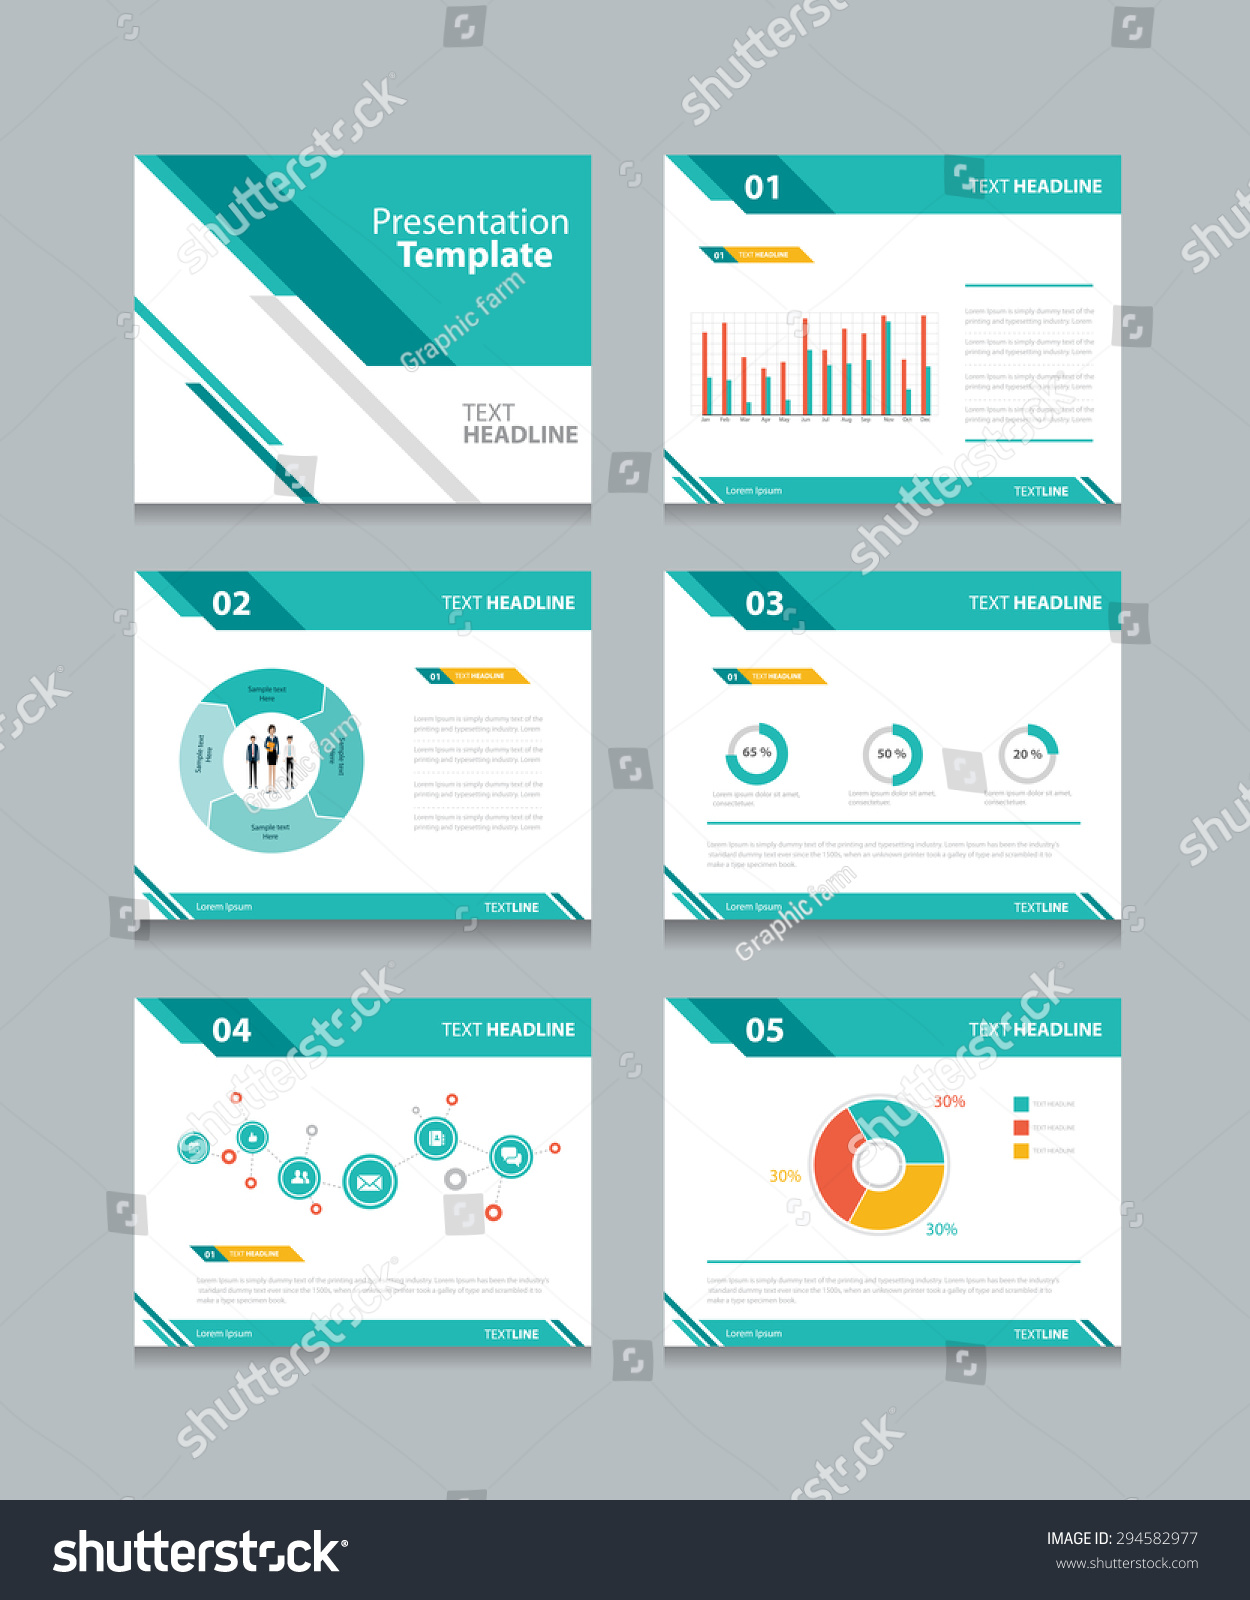 Powerpoint set template vatozozdevelopment powerpoint set template cheaphphosting Images